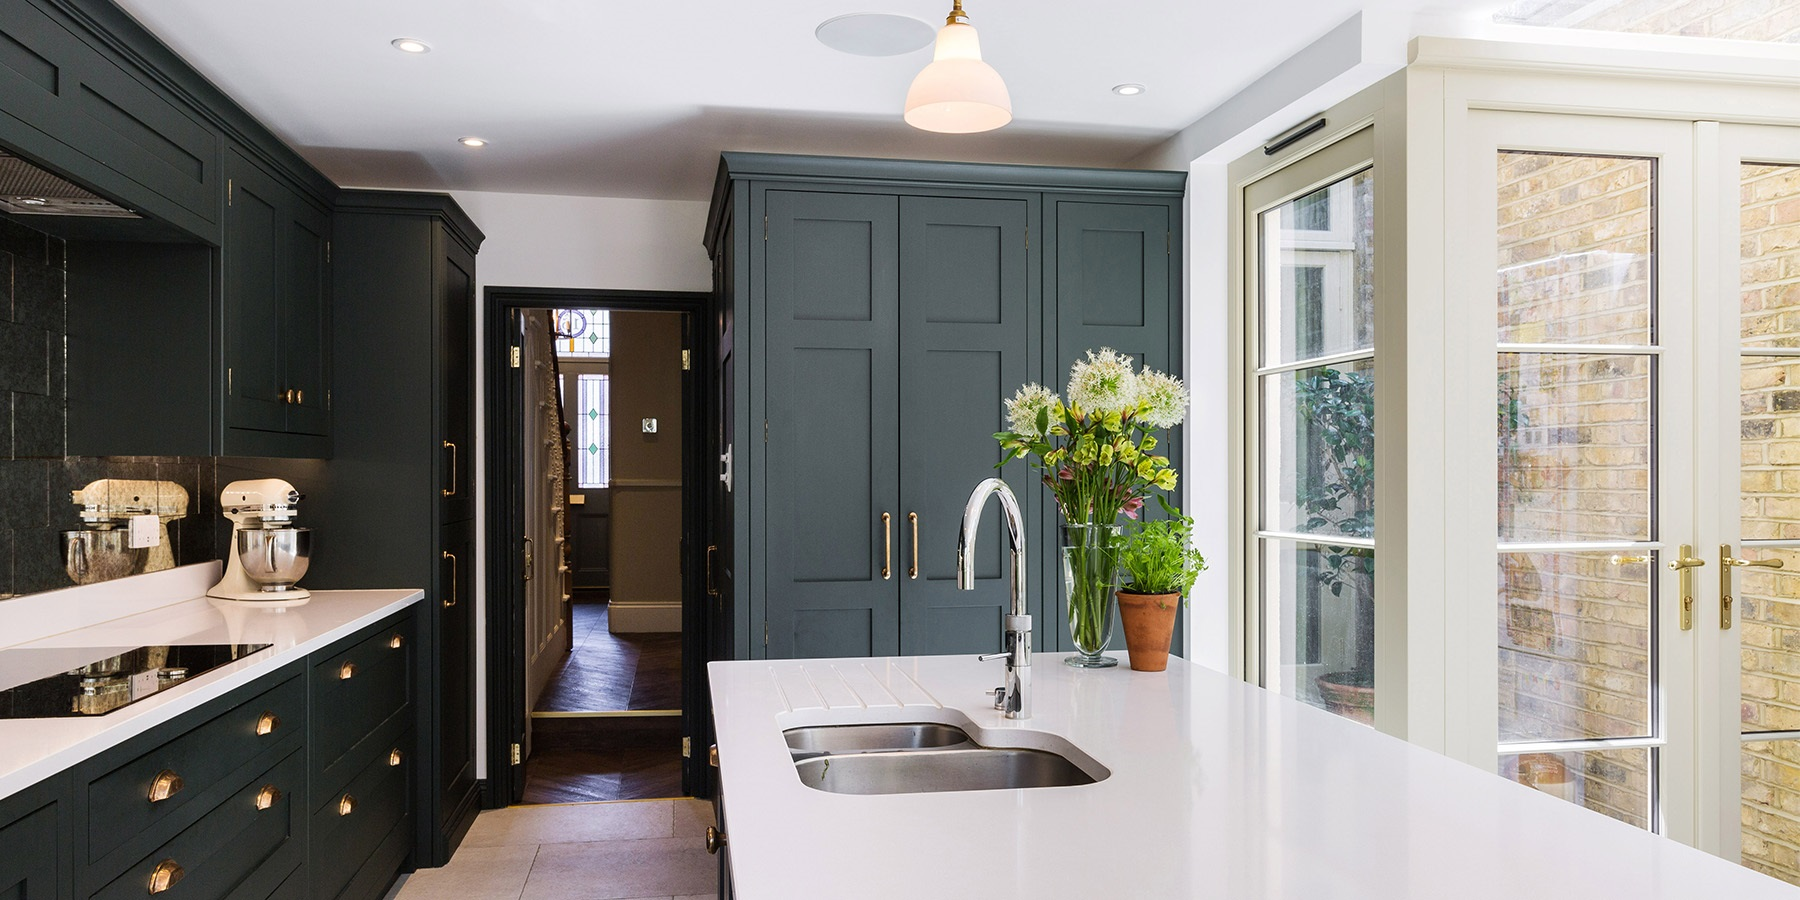 Handmade Town House Shaker Kitchen - Burlanes bespoke Hoyden kitchen cabinetry in Studio Green by Farrow & Ball with copper handles, with central island, Quooker boiling water tap and beautiful bespoke larder unit.